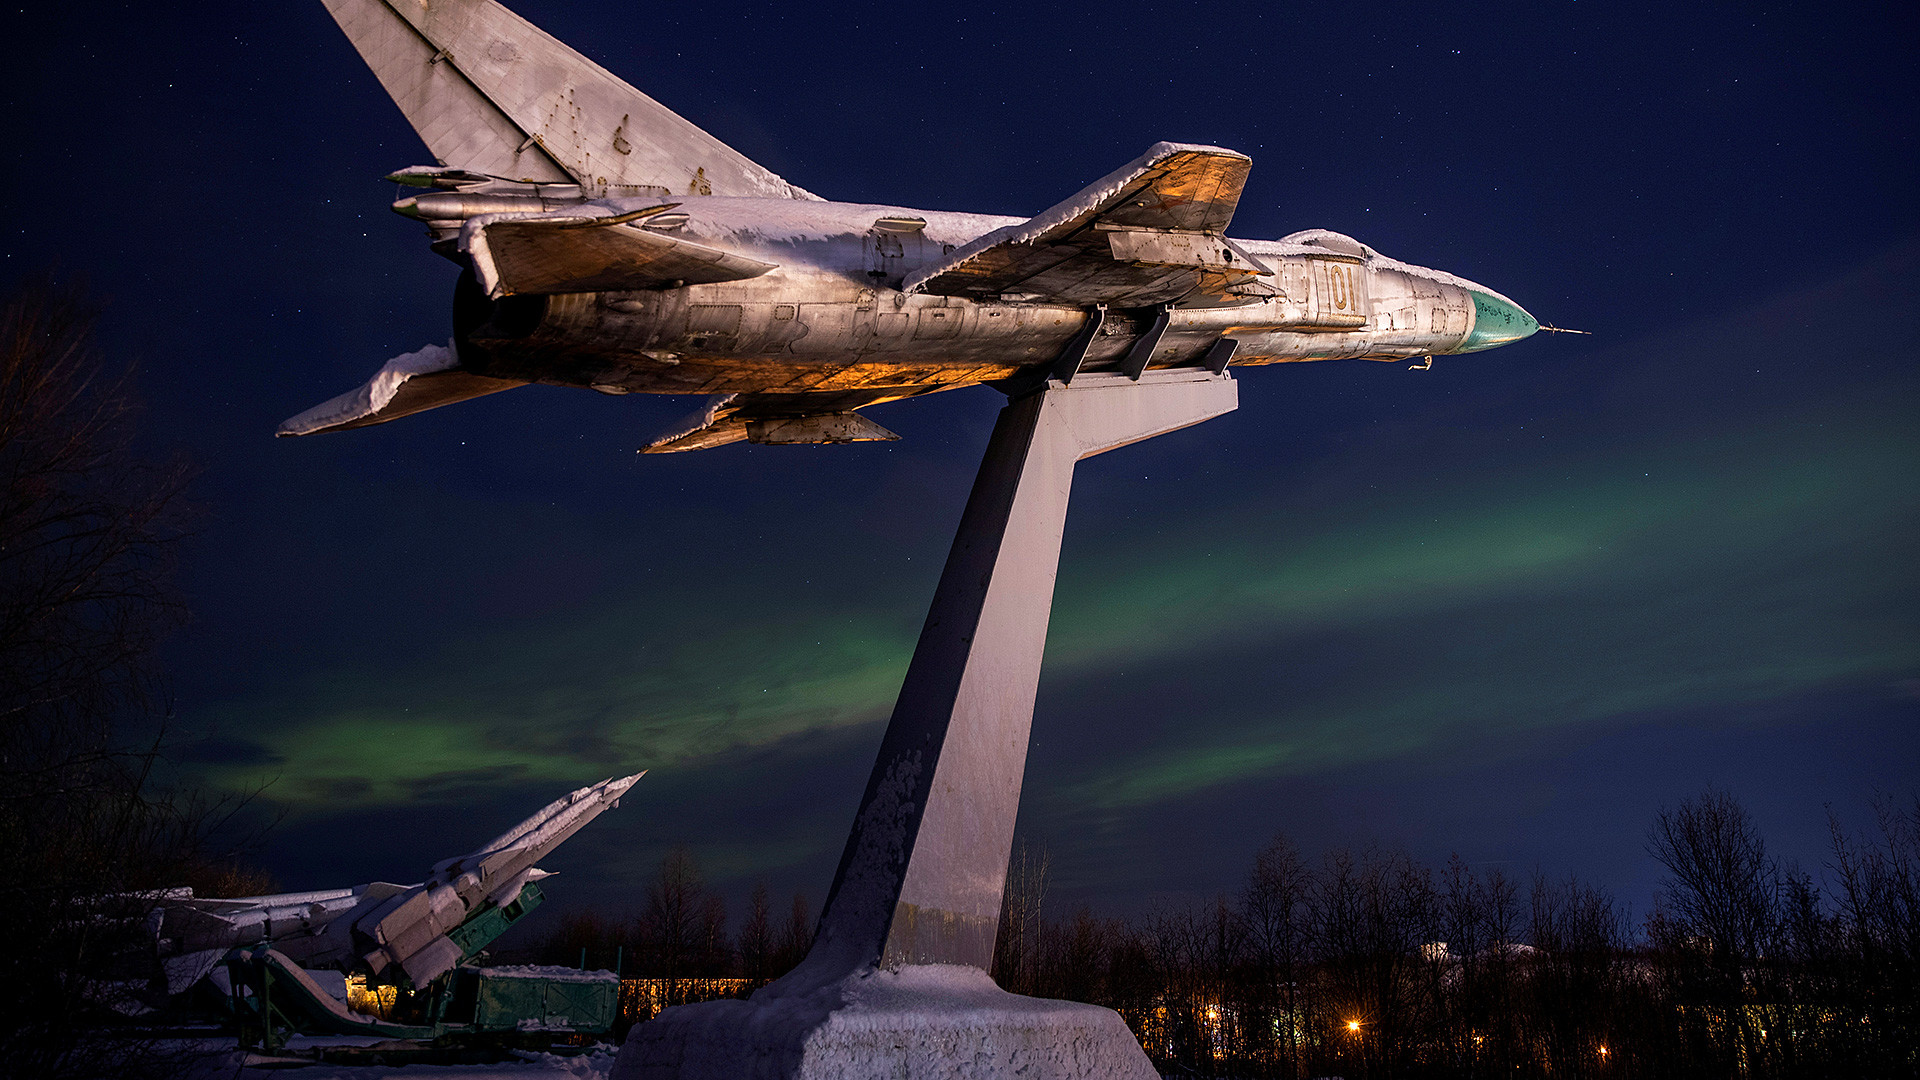 Northern lights over the memorial To Soldiers of the 1st Air Defence Corps to Abram Mys, outside Murmansk, late October 2019.